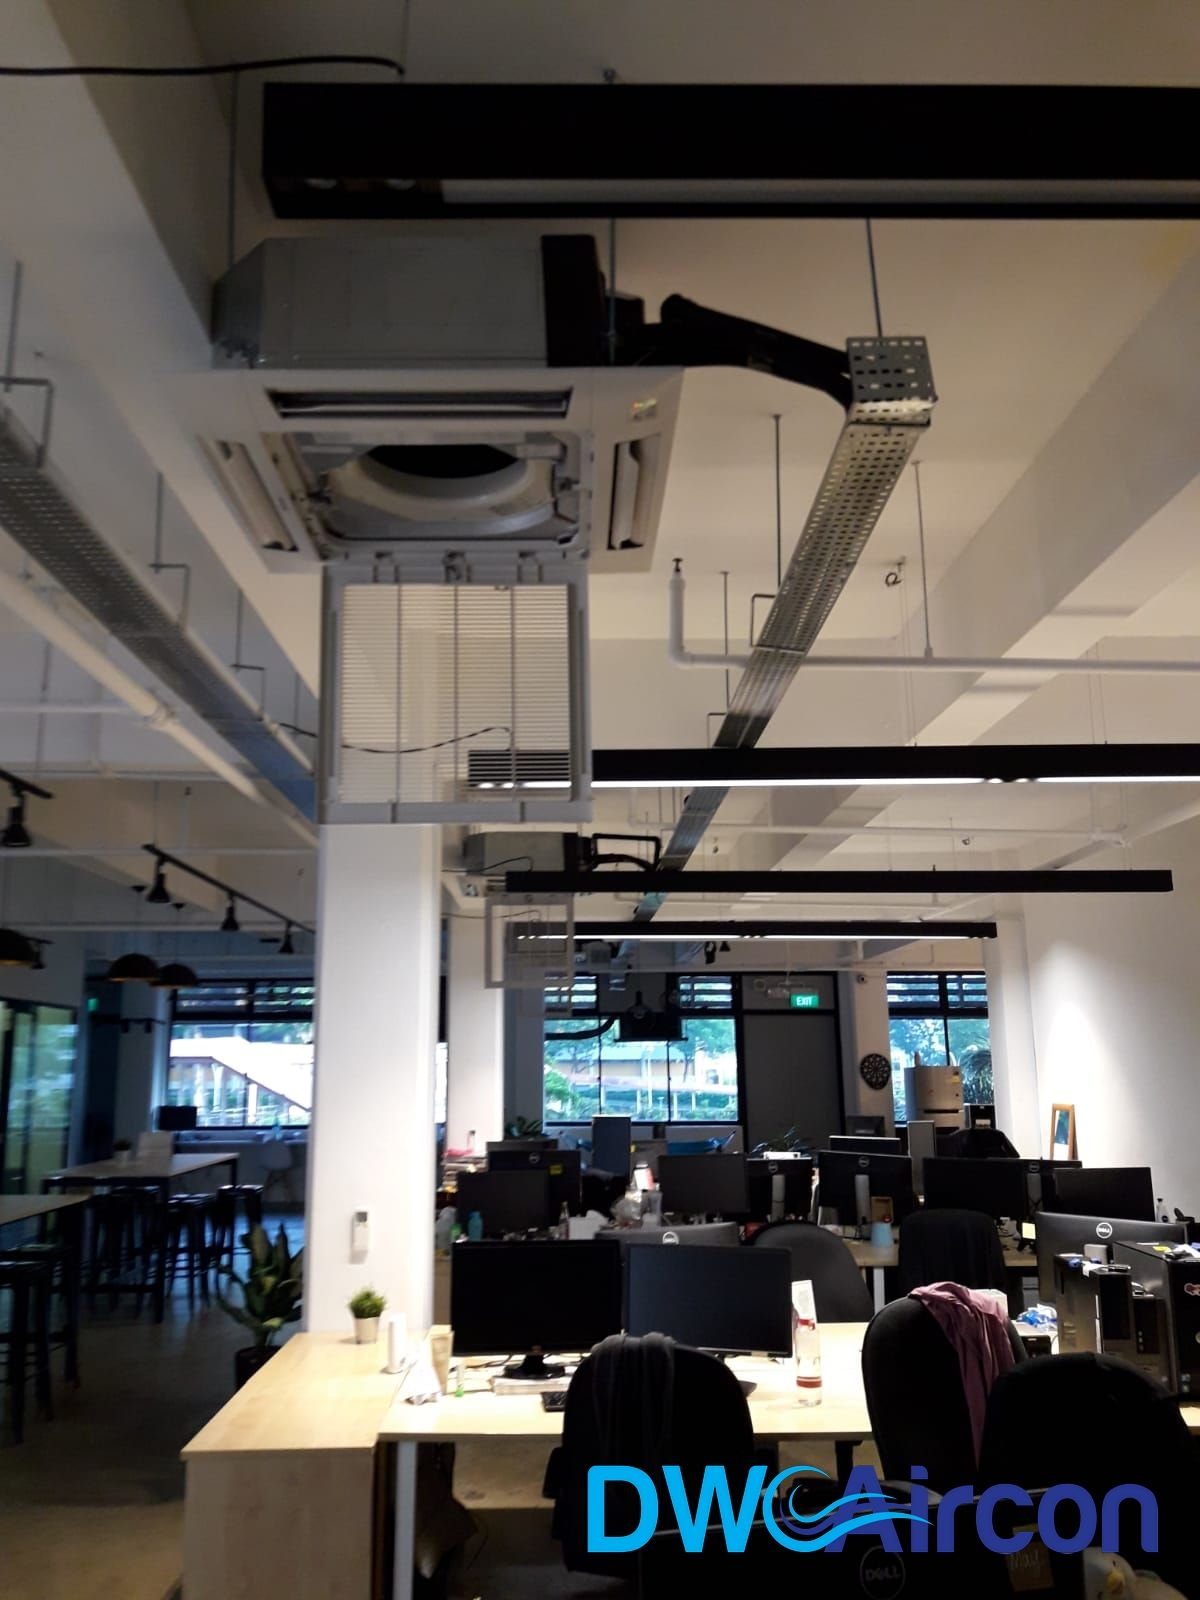 Dw Aircon Singapore Provided A Commercial Aircon Servicing In